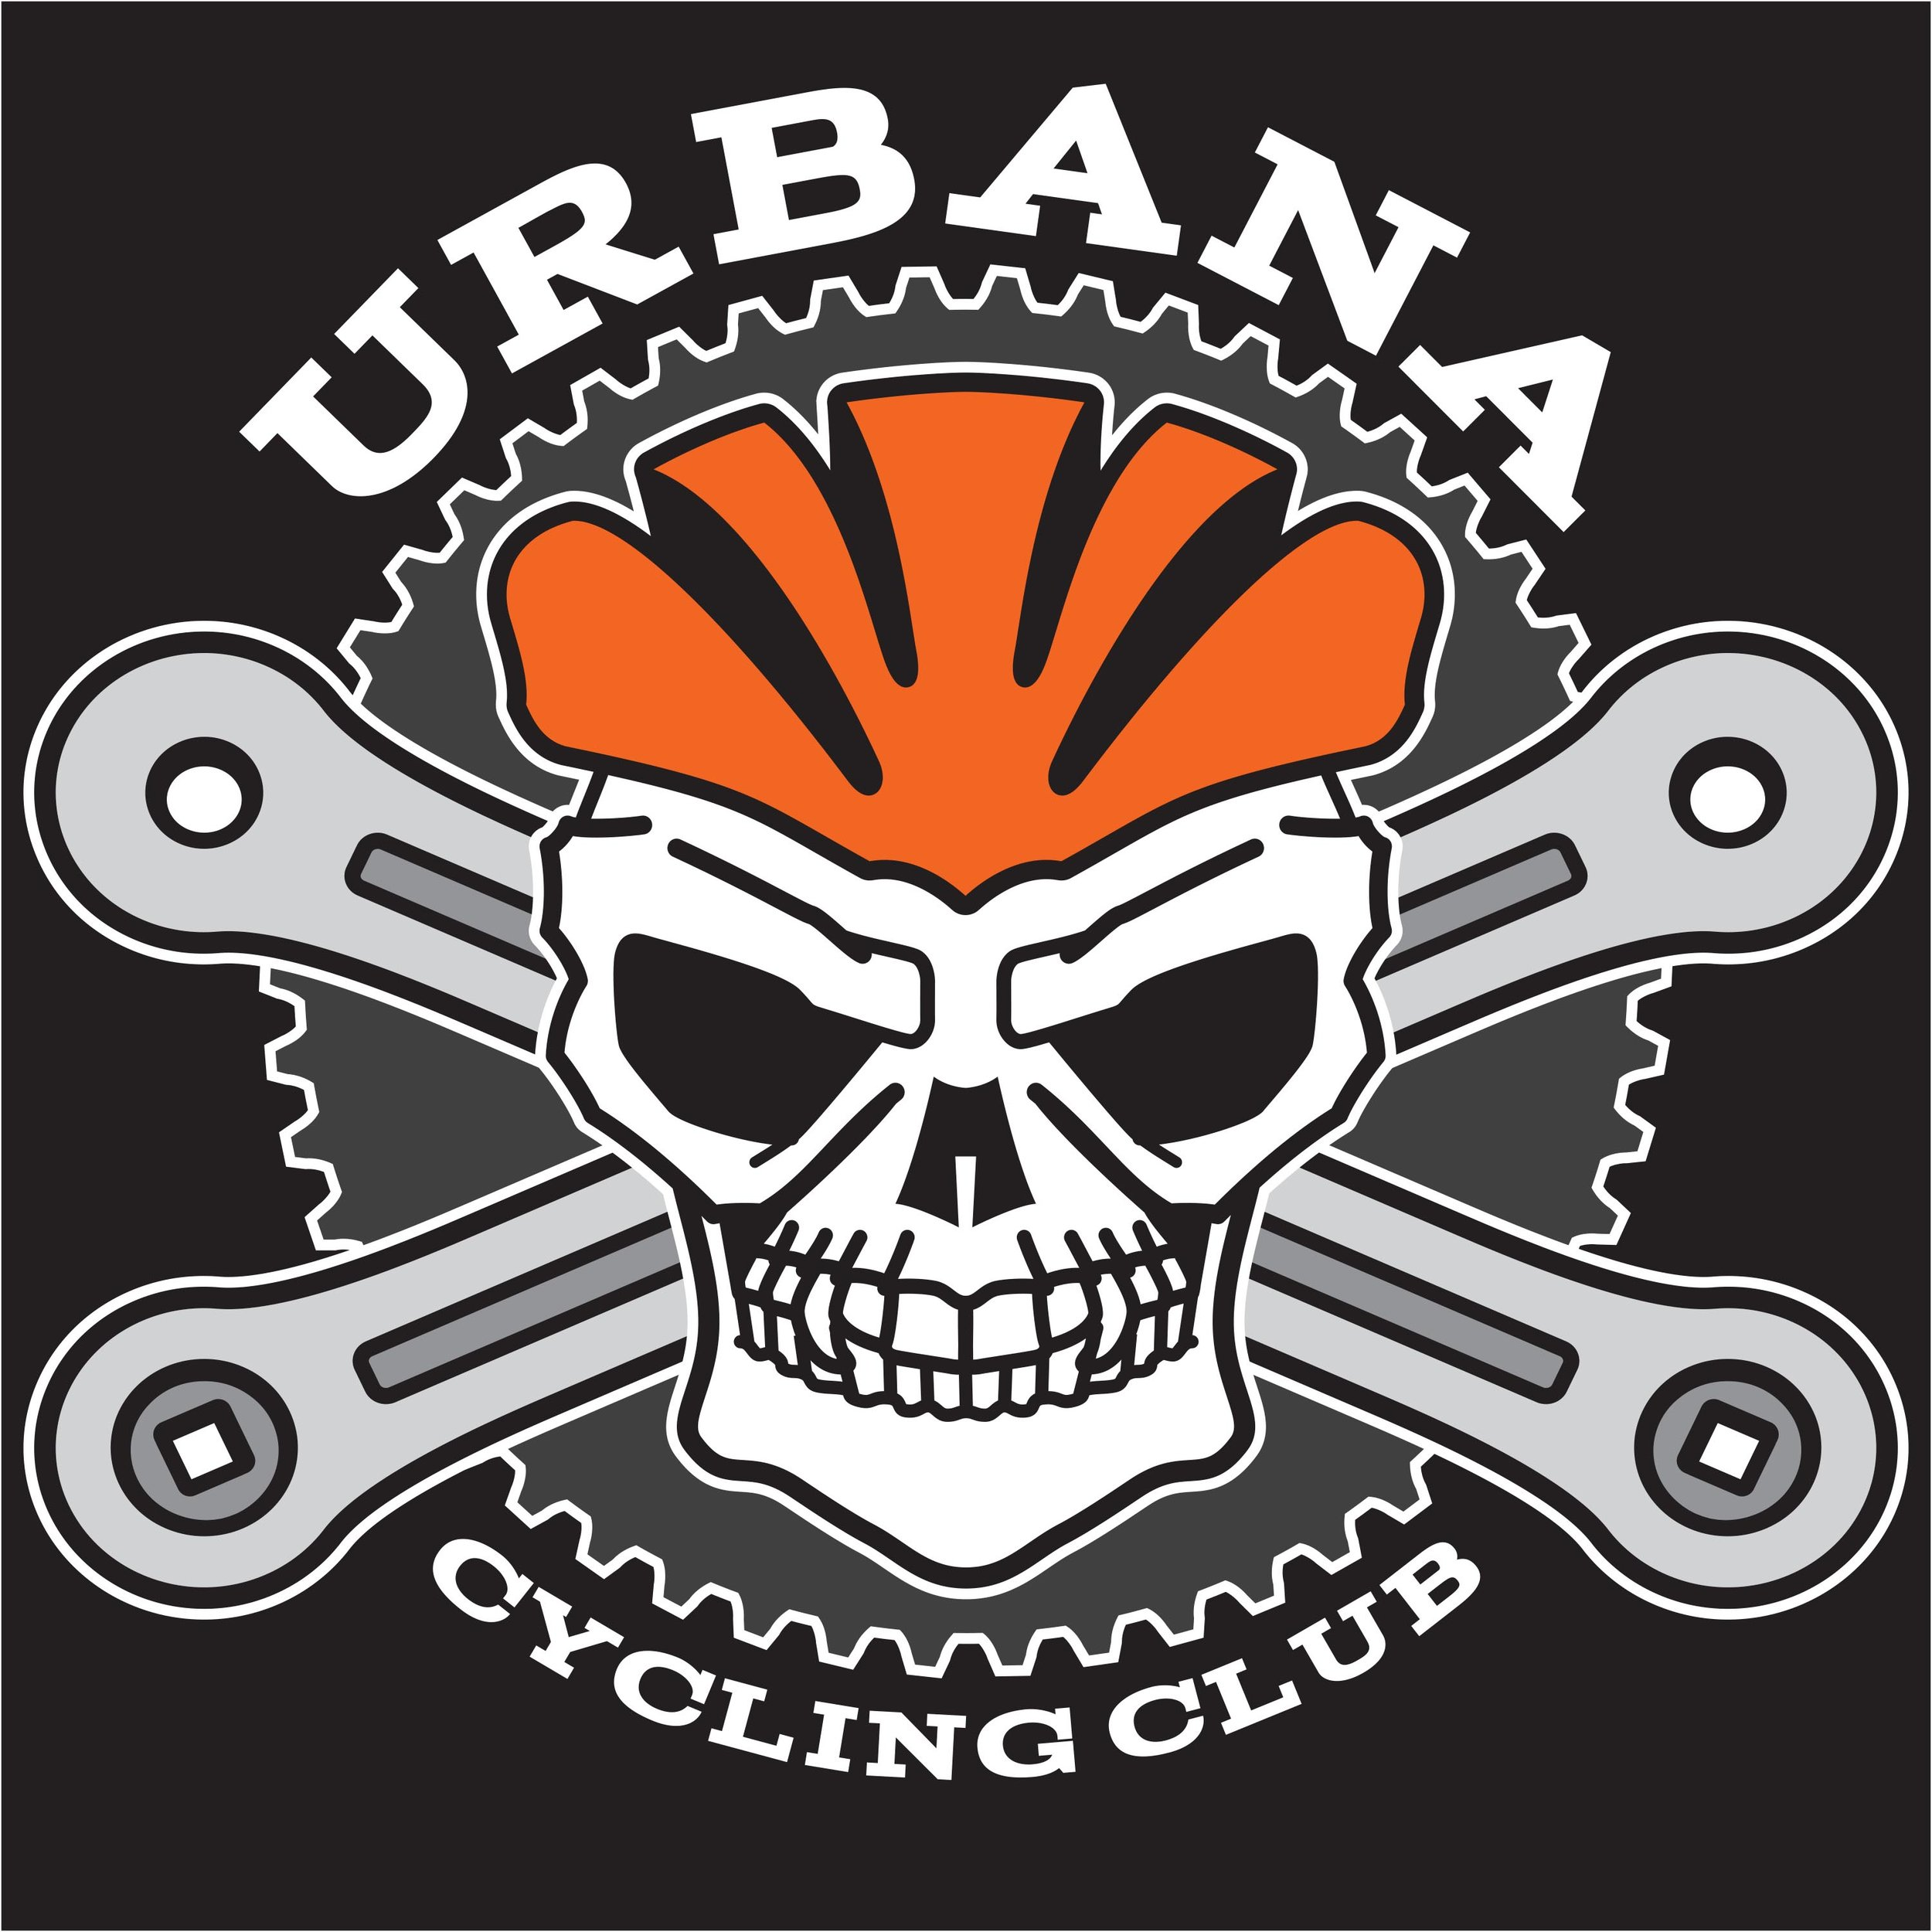 urbana_cycling_club_logo Color.jpg